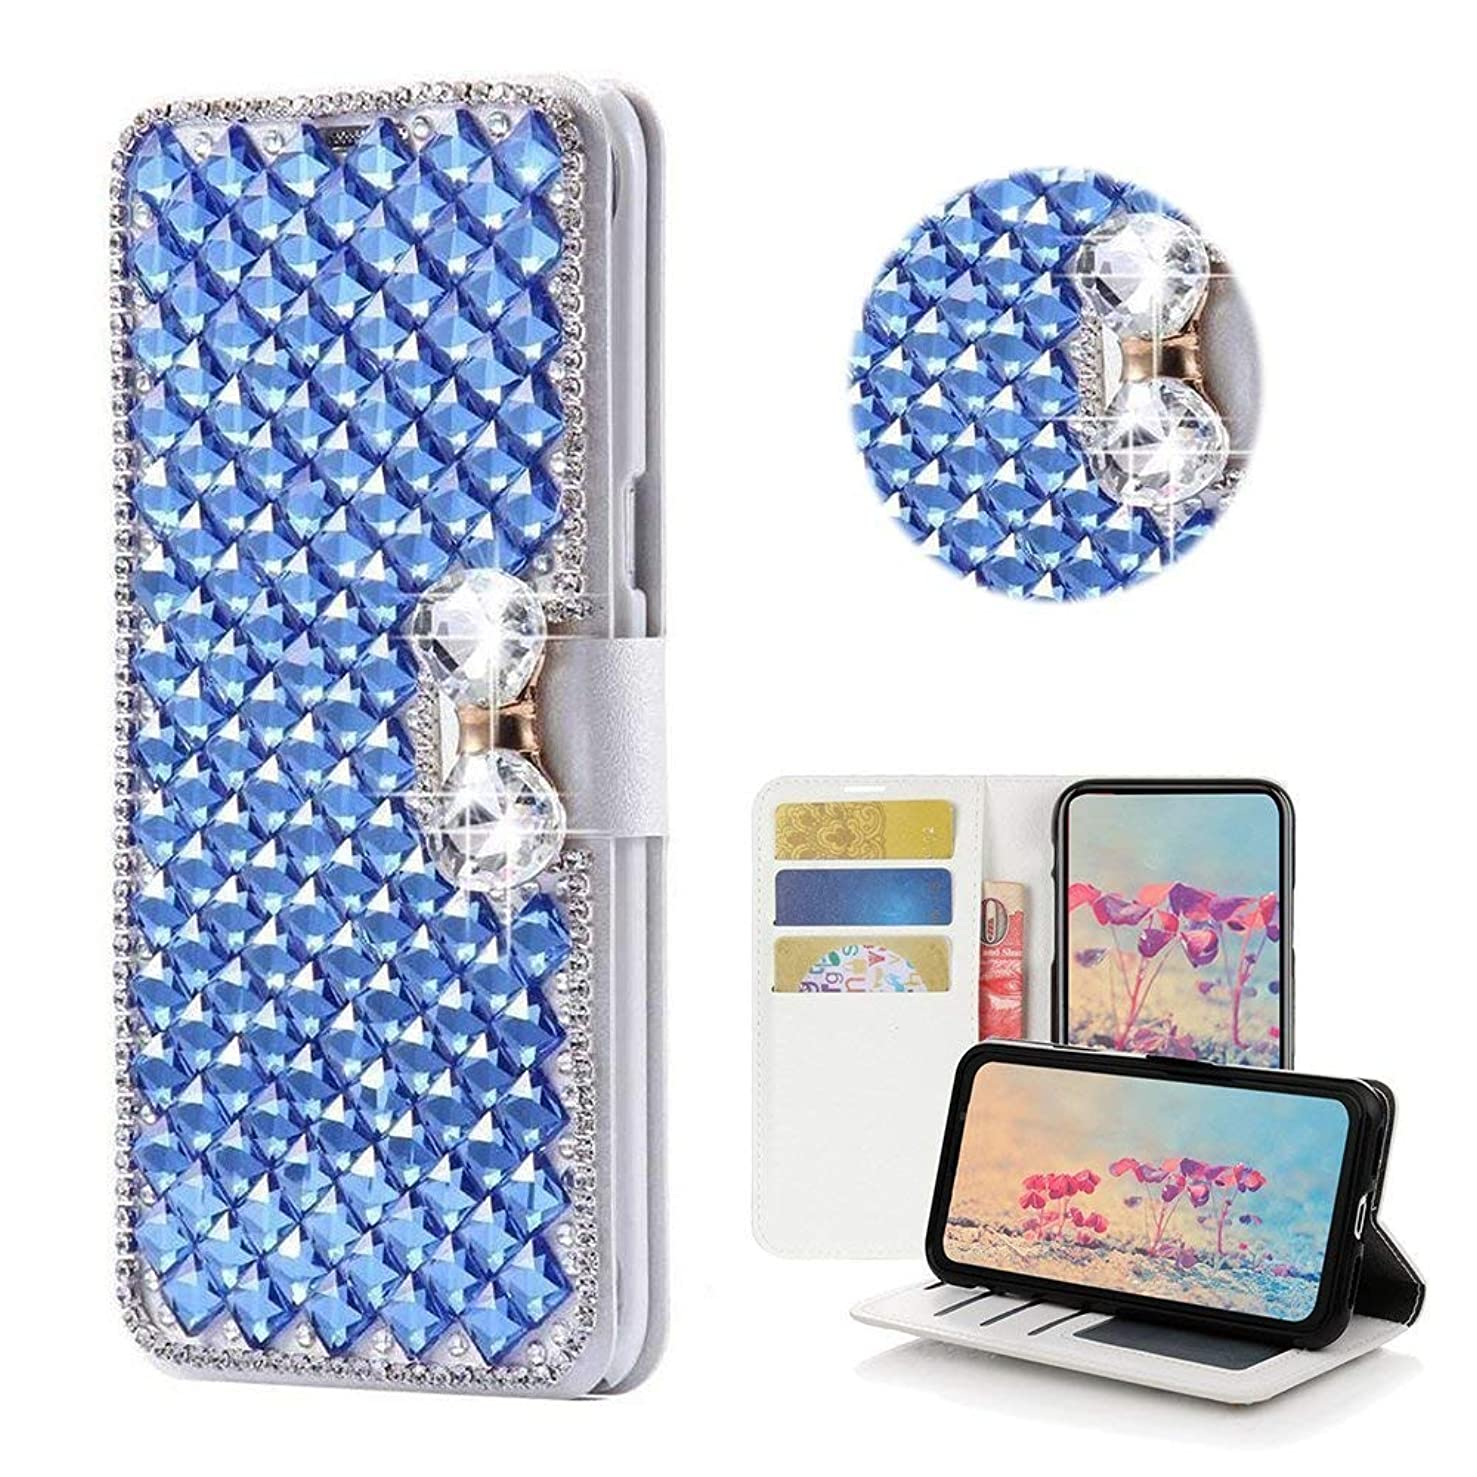 J7 2018/J7 Aero/J7 Aura/J7 Crown/J7 Top J737T/J7 Refine/J7 Eon/J7 Star Wallet case,Bling Diamond Bowknot Shiny Rhinestone PU Leather Card Slot Flip Cover Case for Girl Woman Lady (Blue)